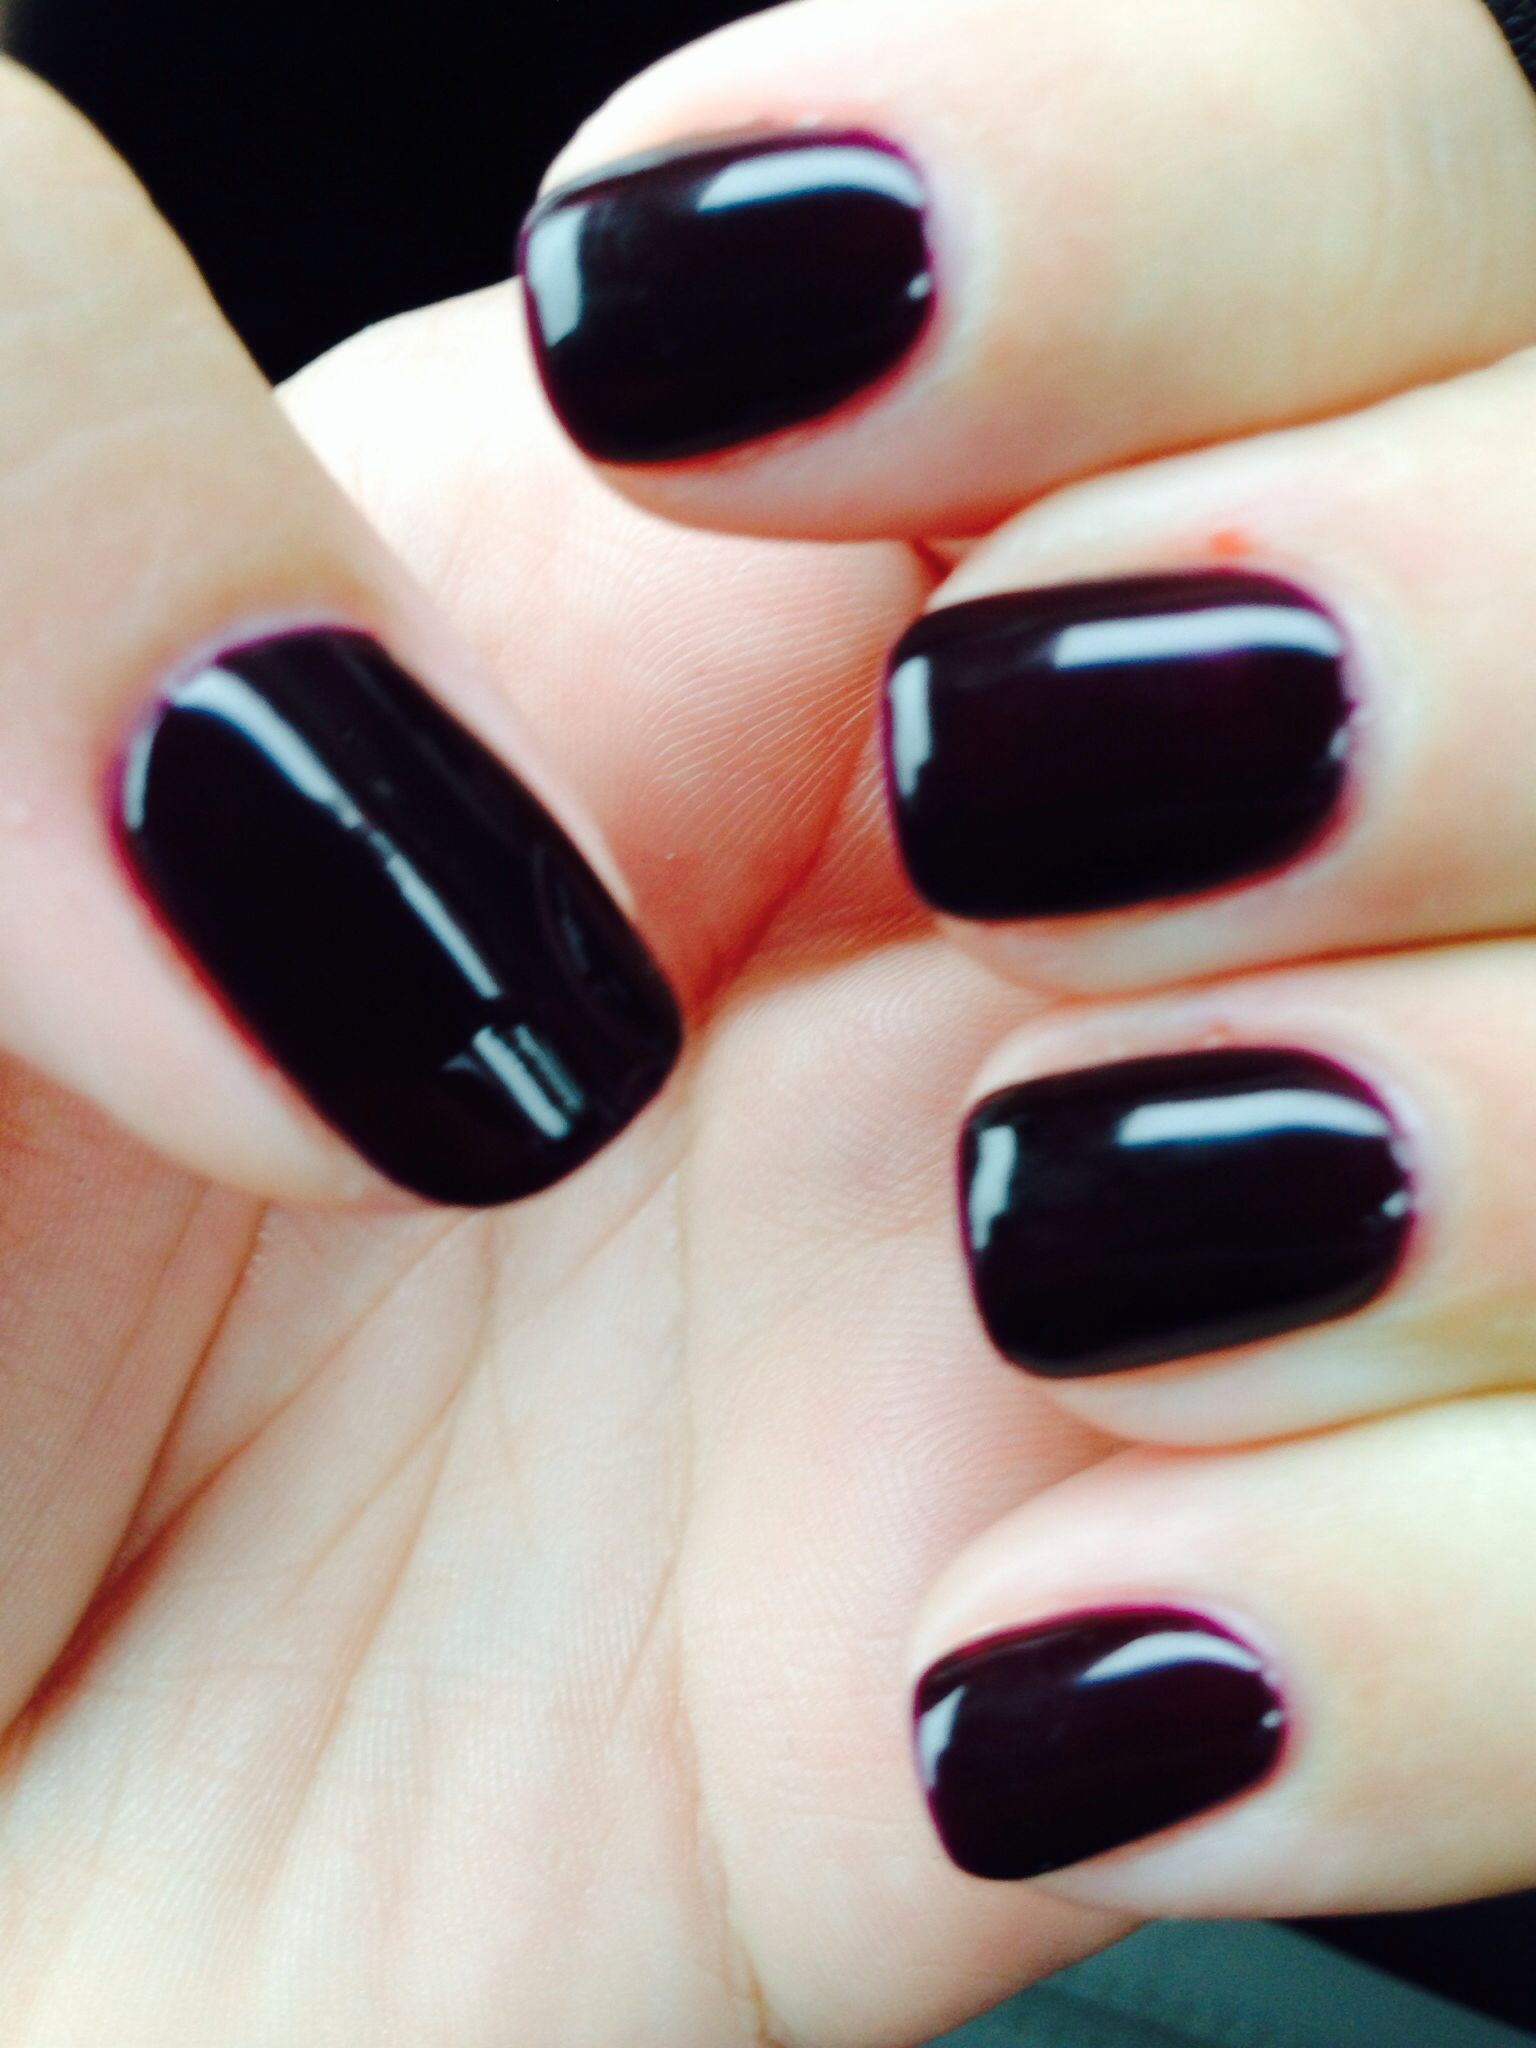 Lincoln Park After Dark - OPI gel | Polished | Pinterest | OPI, Dark ...